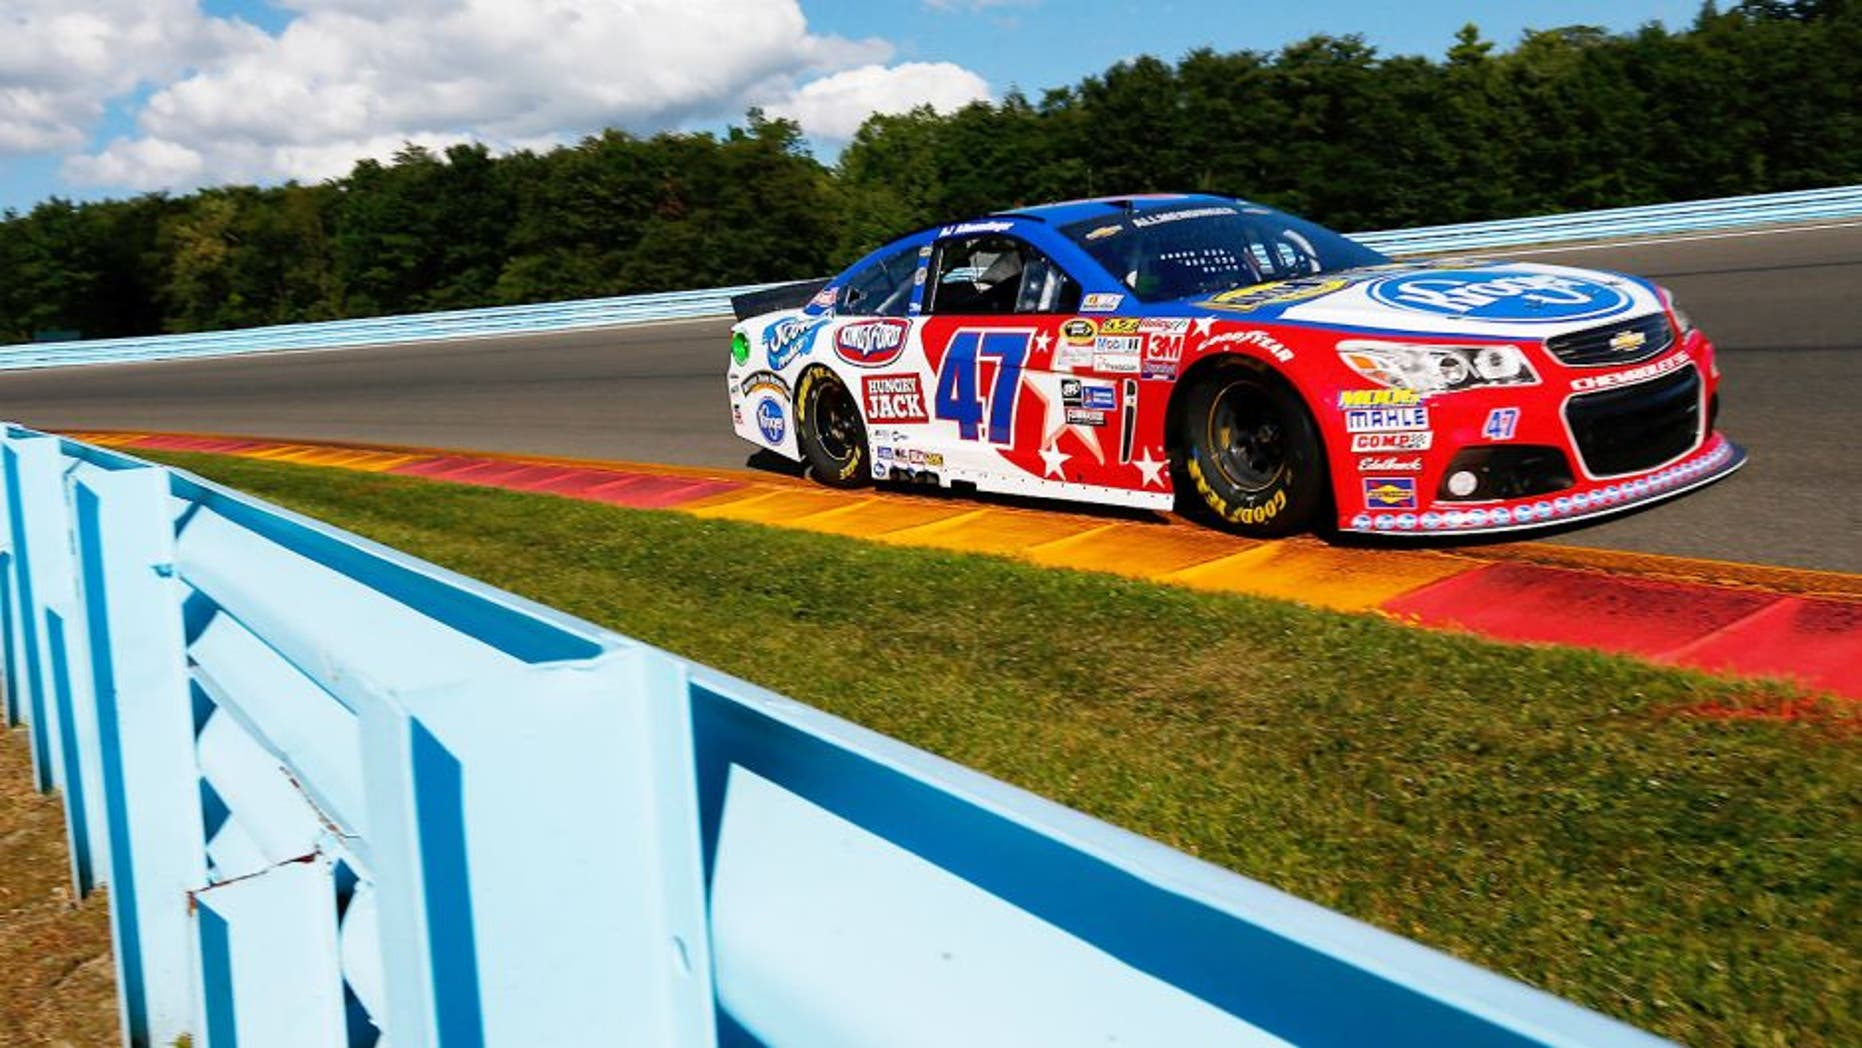 WATKINS GLEN, NY - AUGUST 07: AJ Allmendinger, driver of the #47 Kroger/Bush's Beans Chevrolet, practices for the NASCAR Sprint Cup Series Cheez-It 355 at Watkins Glen International on August 7, 2015 in Watkins Glen, New York. (Photo by Jonathan Ferrey/Getty Images)